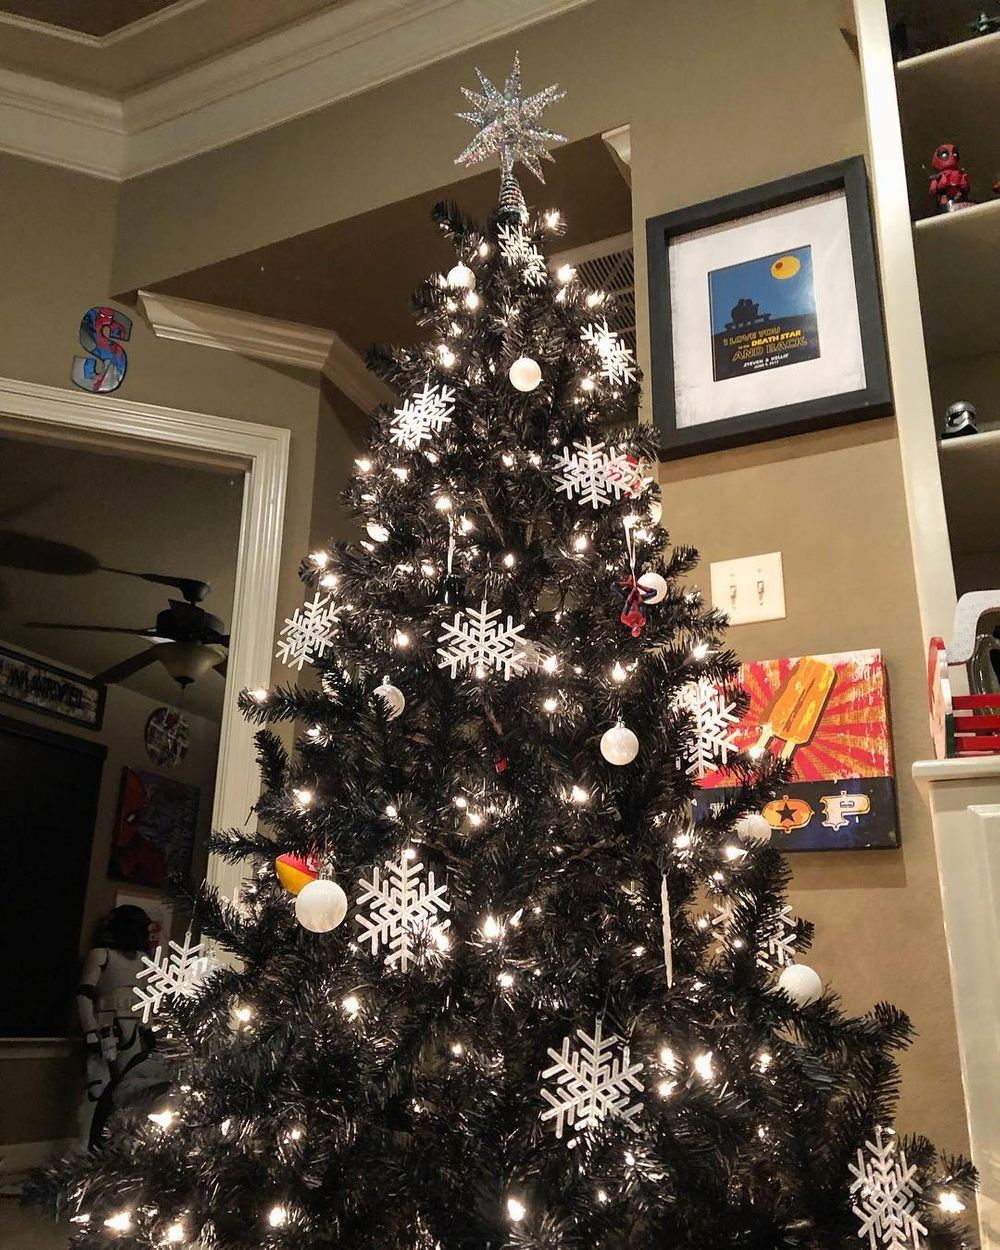 People Are Decorating Their Christmas Trees With Flowers For A Fresh Holiday Twist